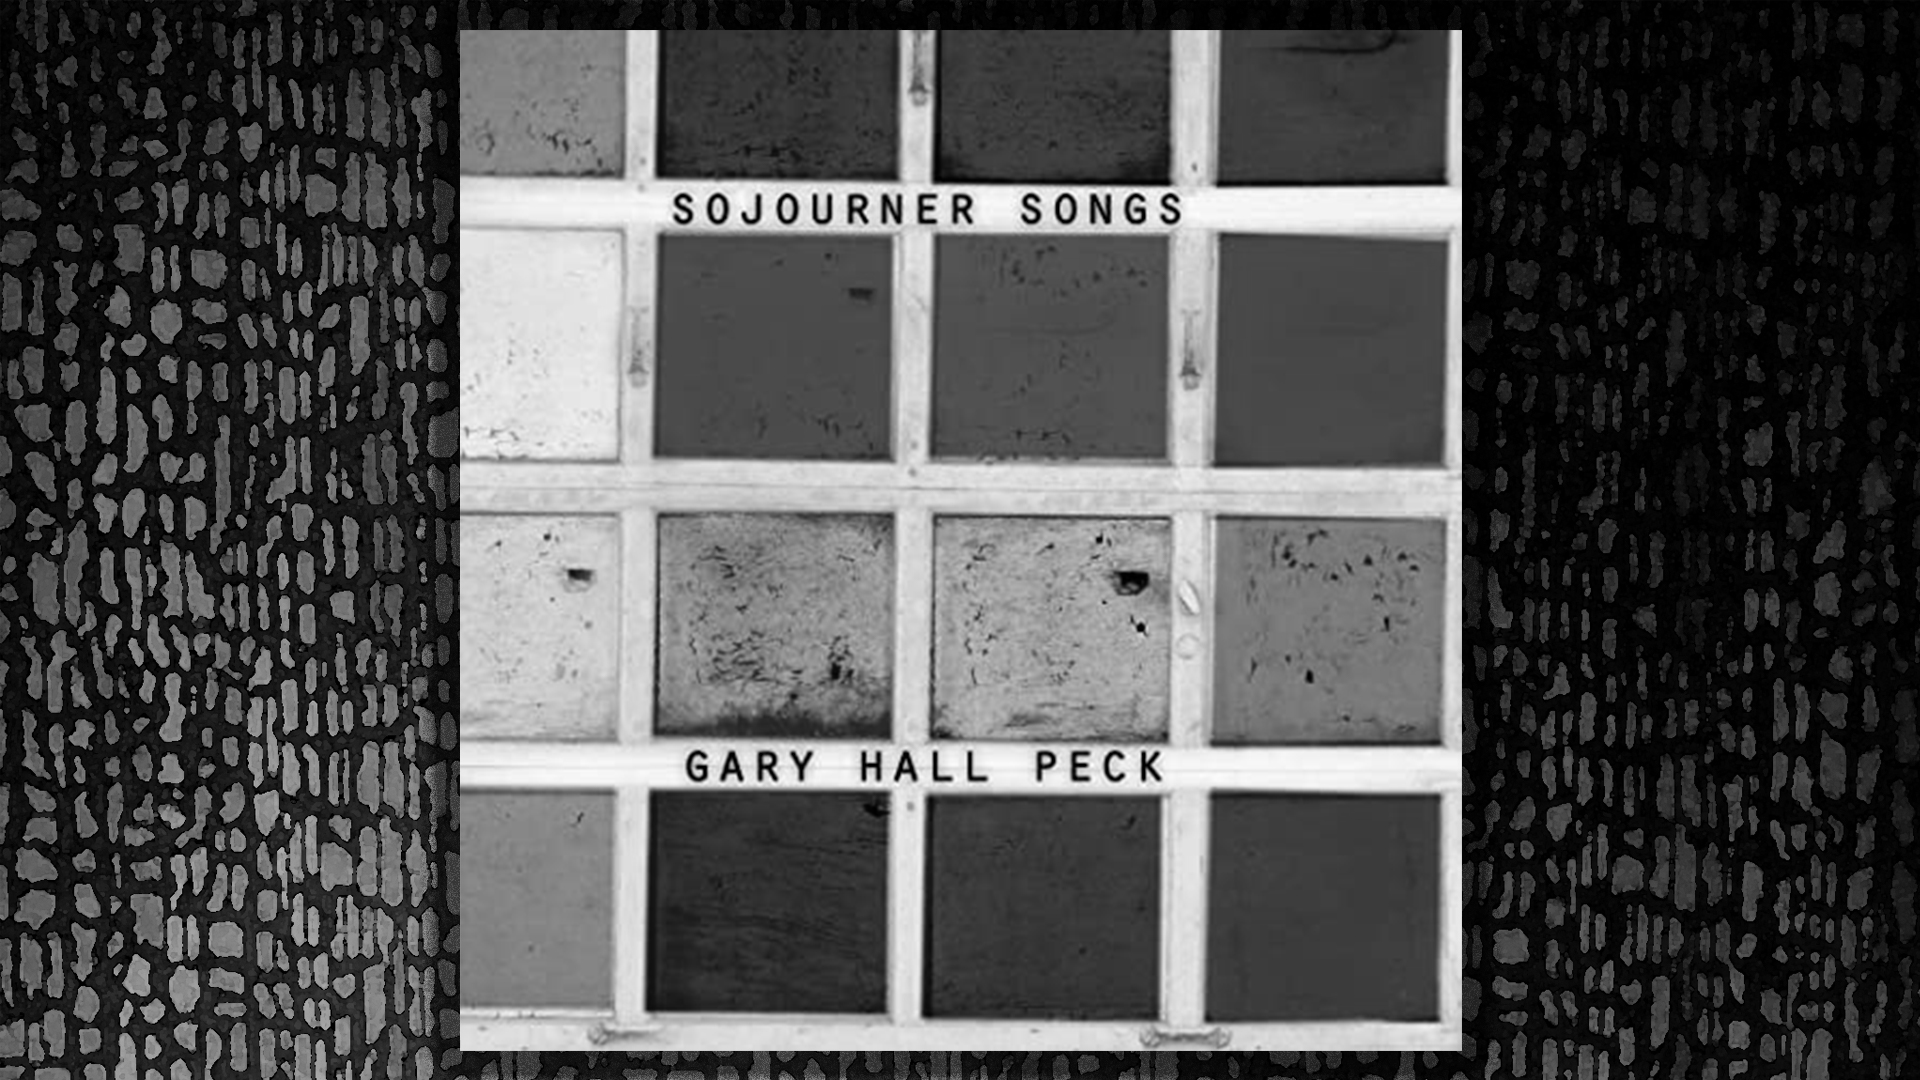 Sojourner Songs, Gary Hall Peck